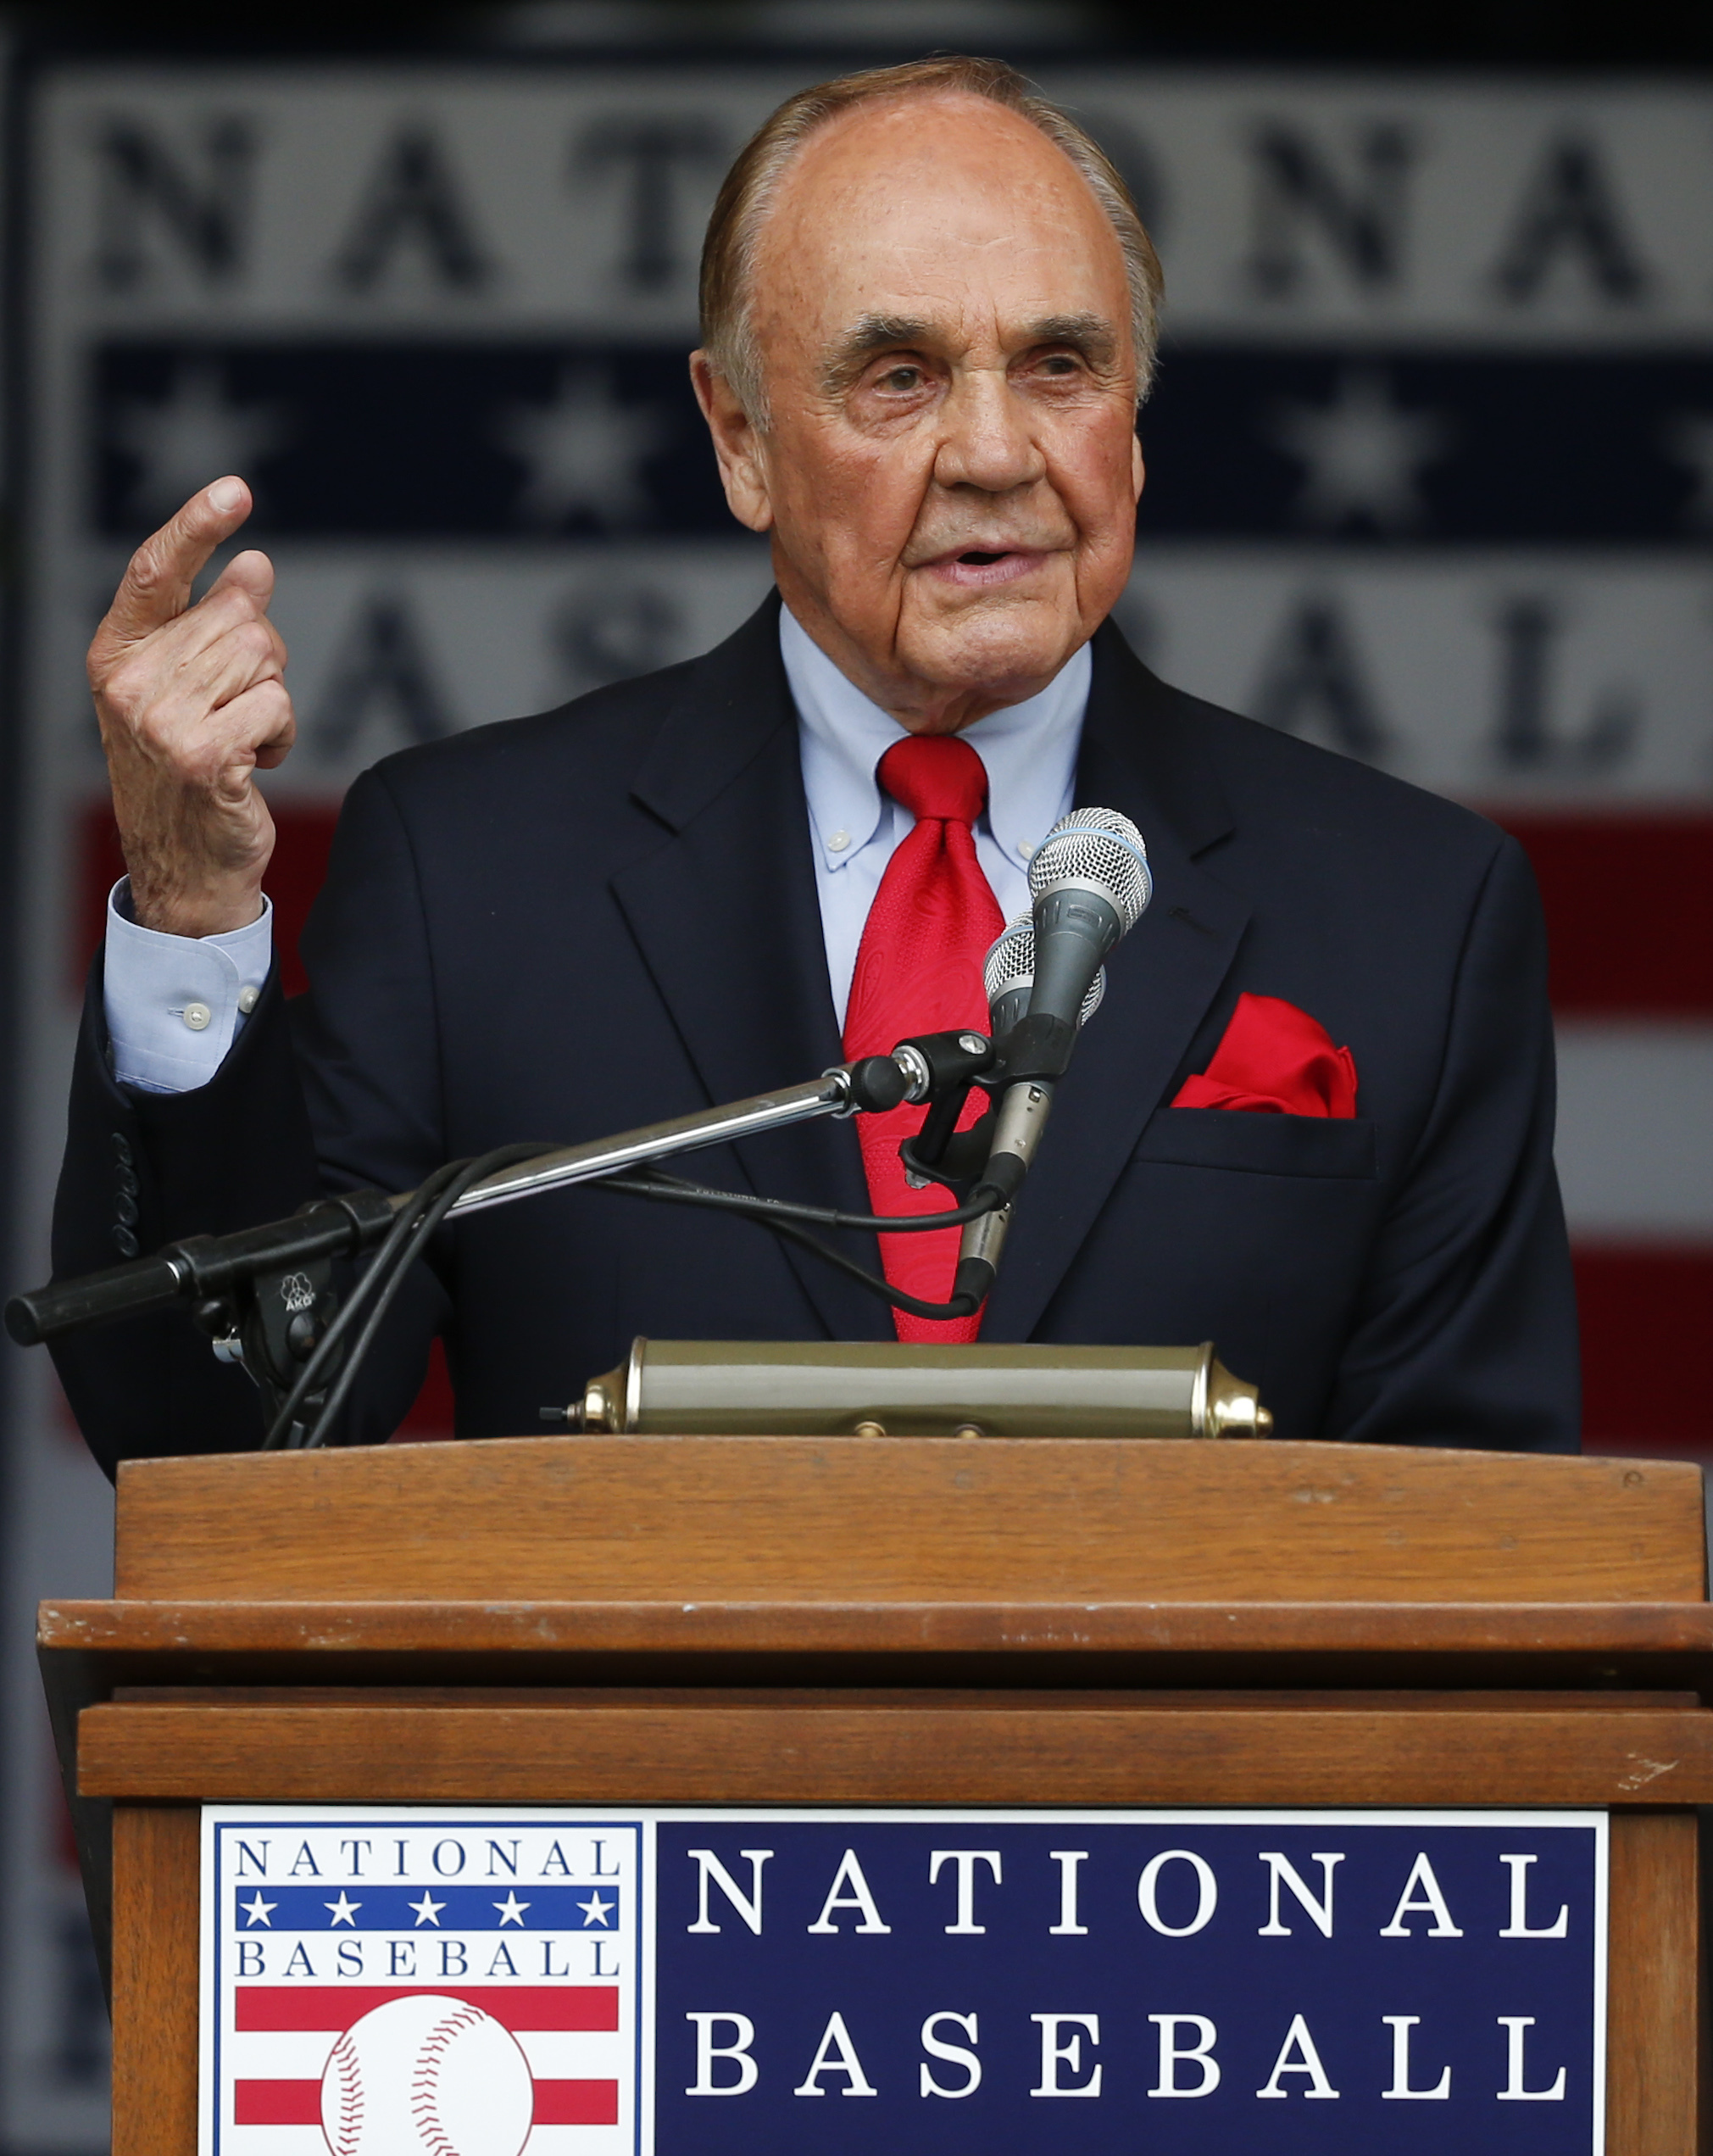 FILE - In this July 25, 2015, file photo, Dick Enberg speaks after receiving the Ford C. Frick Award during a ceremony at Doubleday Field in Cooperstown, N.Y. Enberg, the sportscaster who got his big break with UCLA basketball and went on to call Super Bowls, Olympics, Final Fours and Angels and Padres baseball games, died Thursday, Dec. 21, 2017. He was 82. Engberg's daughter, Nicole, confirmed the death to The Associated Press. She said the family became concerned when he didn't arrive on his flight to Boston on Thursday, and that he was found dead at his home in La Jolla, a San Diego neighborhood. (AP Photo/Mike Groll, File)